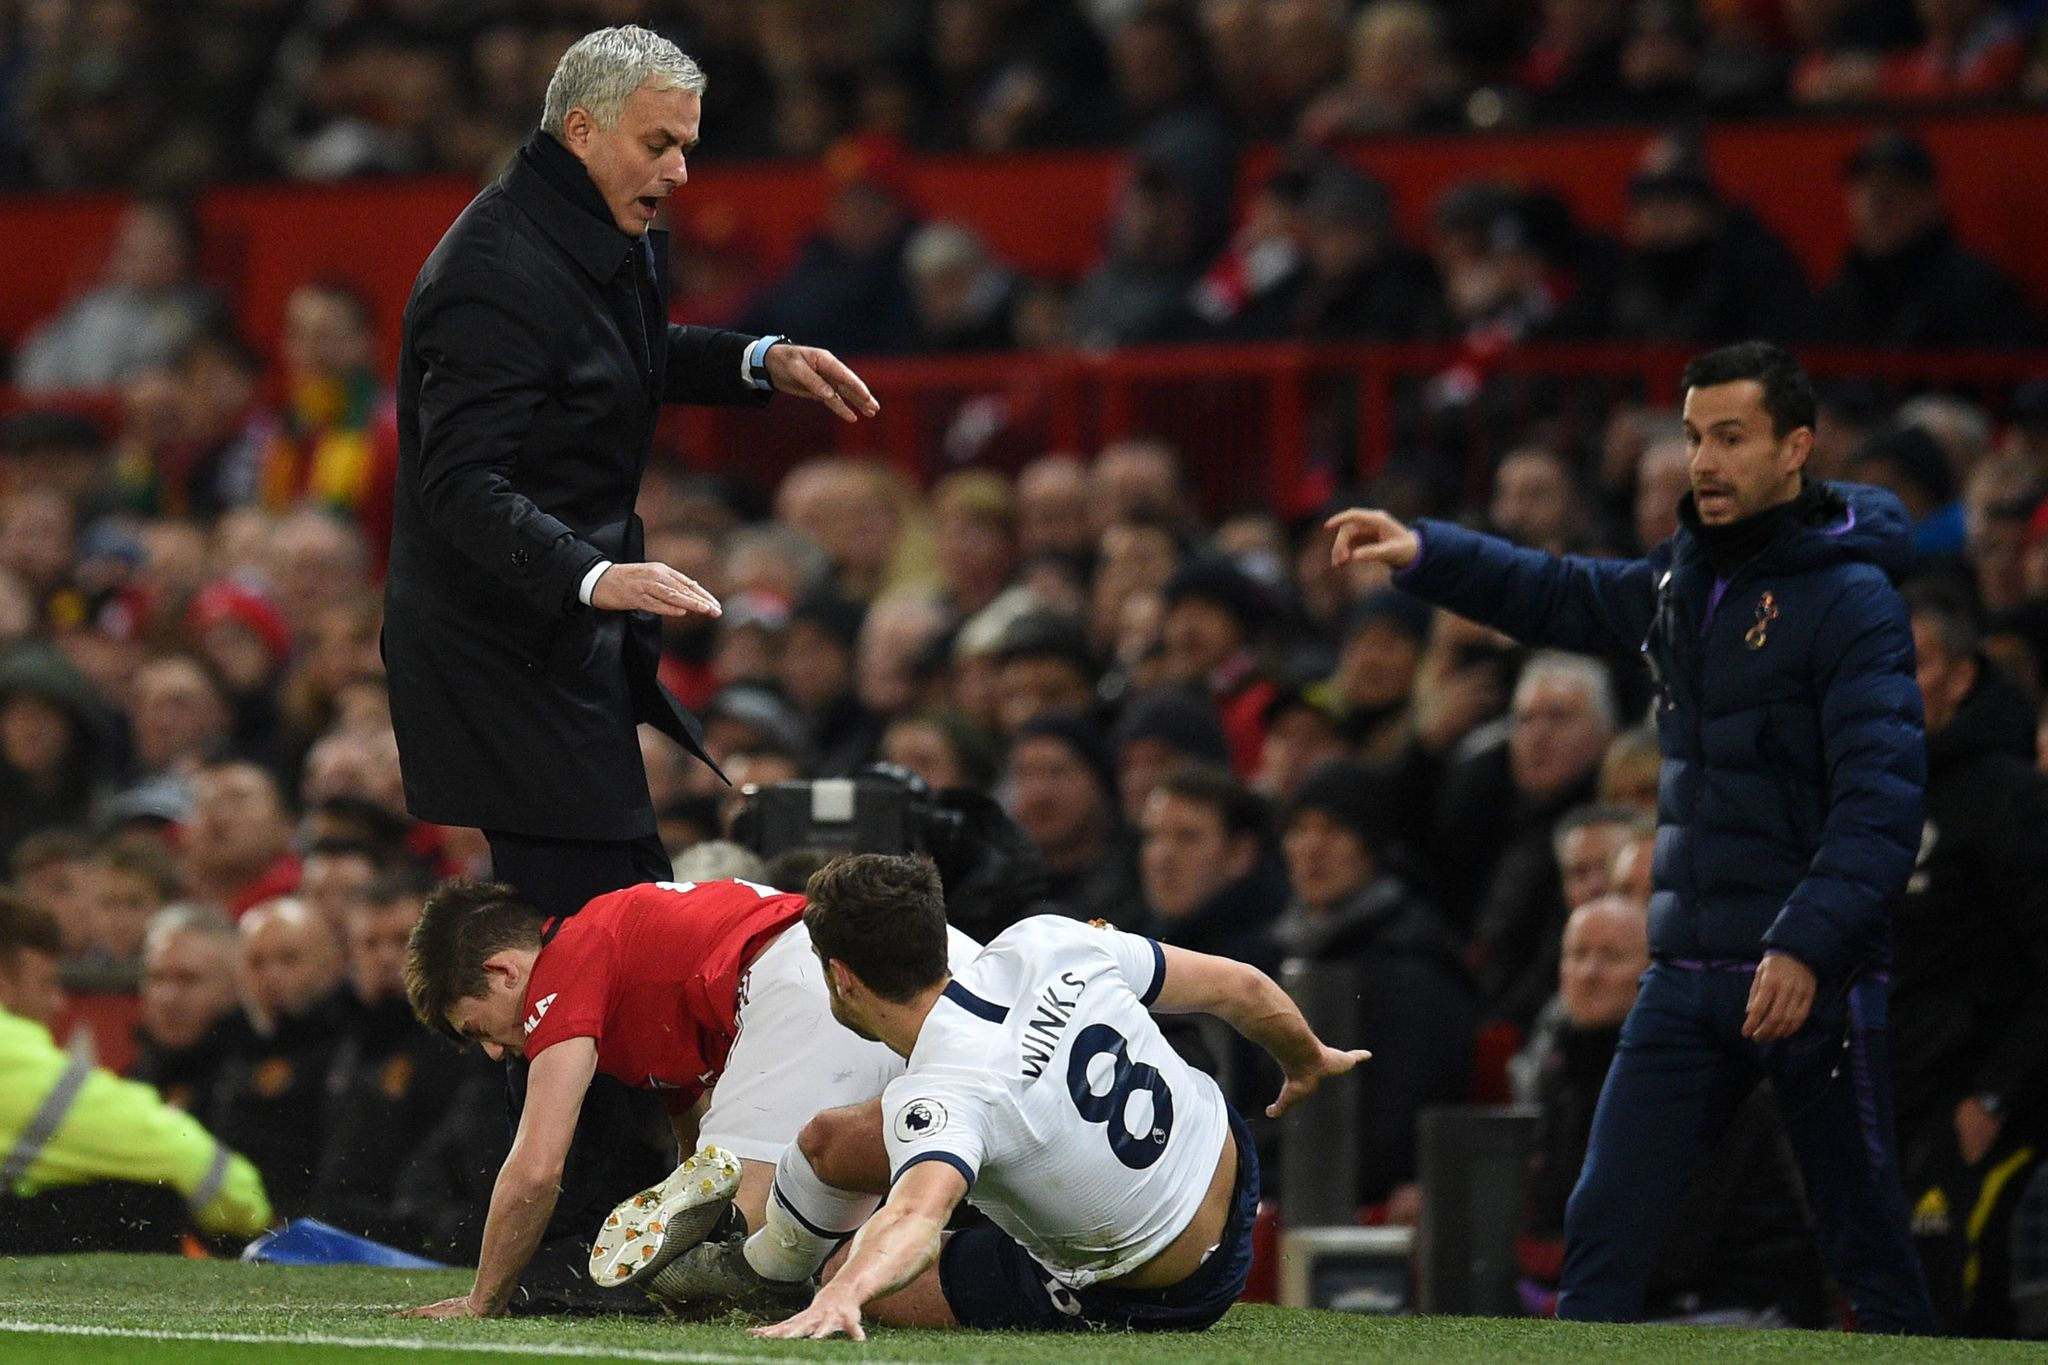 Manchester Uniteds Welsh midfielder Daniel James (2nd L) collides with Tottenham Hotspurs Portuguese head coach Jose <HIT>Mourinho</HIT> (L) on the touchline after a challenge with Tottenham Hotspurs English midfielder Harry Winks (R) during the English Premier League football match between Manchester United and Tottenham Hotspur at Old Trafford in Manchester, north west England, on December 4, 2019. (Photo by Oli SCARFF / AFP) / RESTRICTED TO EDITORIAL USE. No use with unauthorized audio, video, data, fixture lists, club/league logos or live services. Online in-match use limited to 120 images. An additional 40 images may be used in extra time. No video emulation. Social media in-match use limited to 120 images. An additional 40 images may be used in extra time. No use in betting publications, games or single club/league/player publications. /